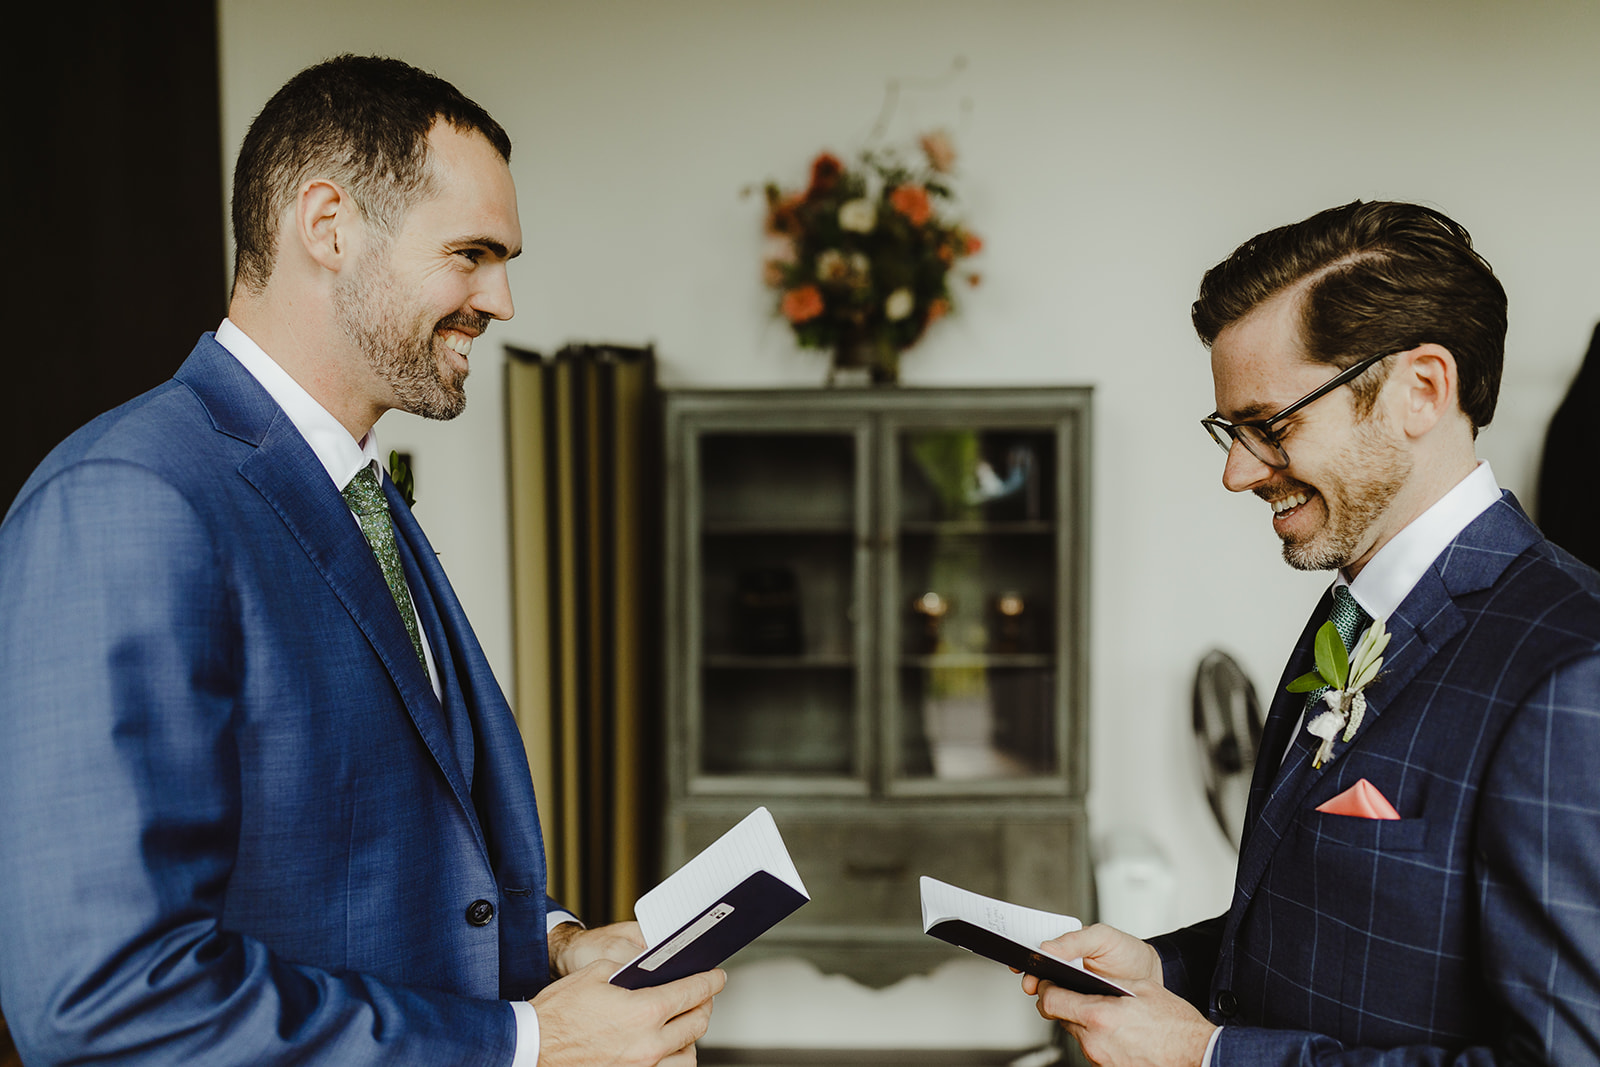 Grooms sharing vows